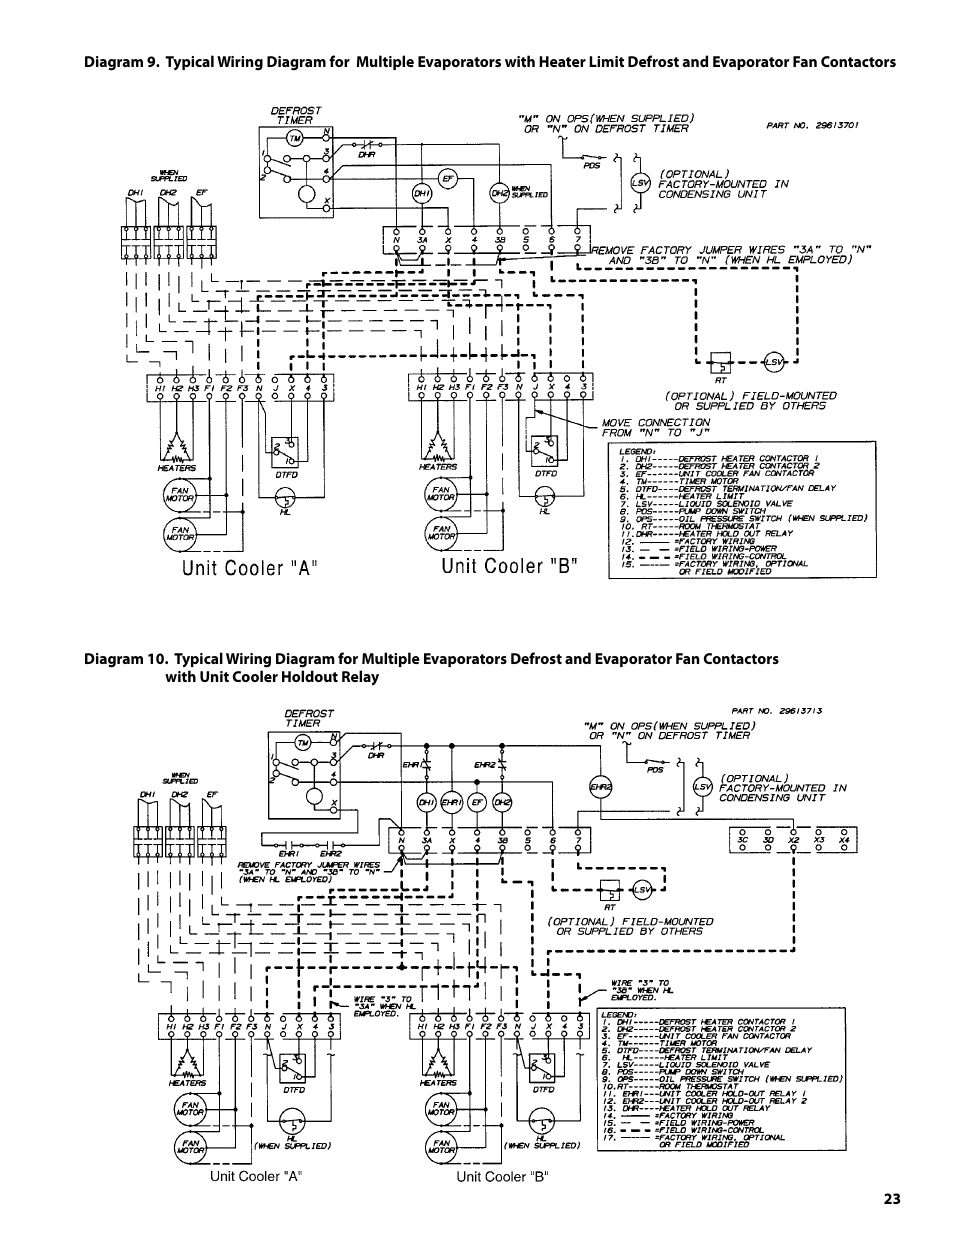 bohn heatcraft wiring diagram online wiring diagram Heatcraft Freezer Wiring Line Diagram bohn let0901f wiring diagram online wiring diagram bohn heatcraft wiring diagram